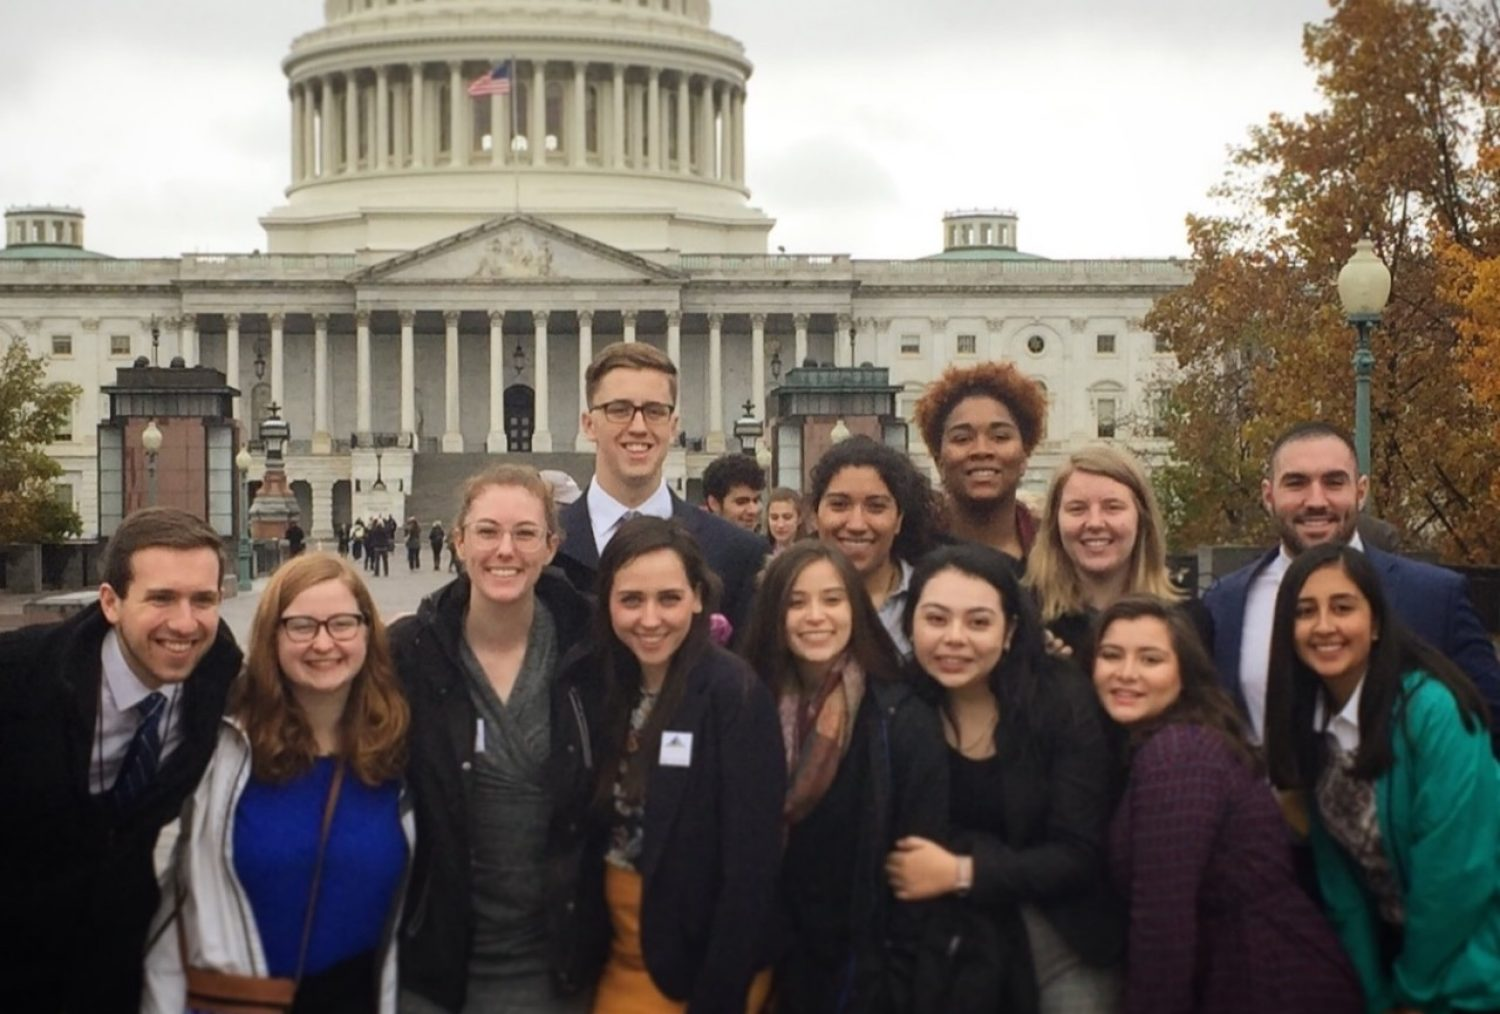 Group of students standing in front of United States Capitol building